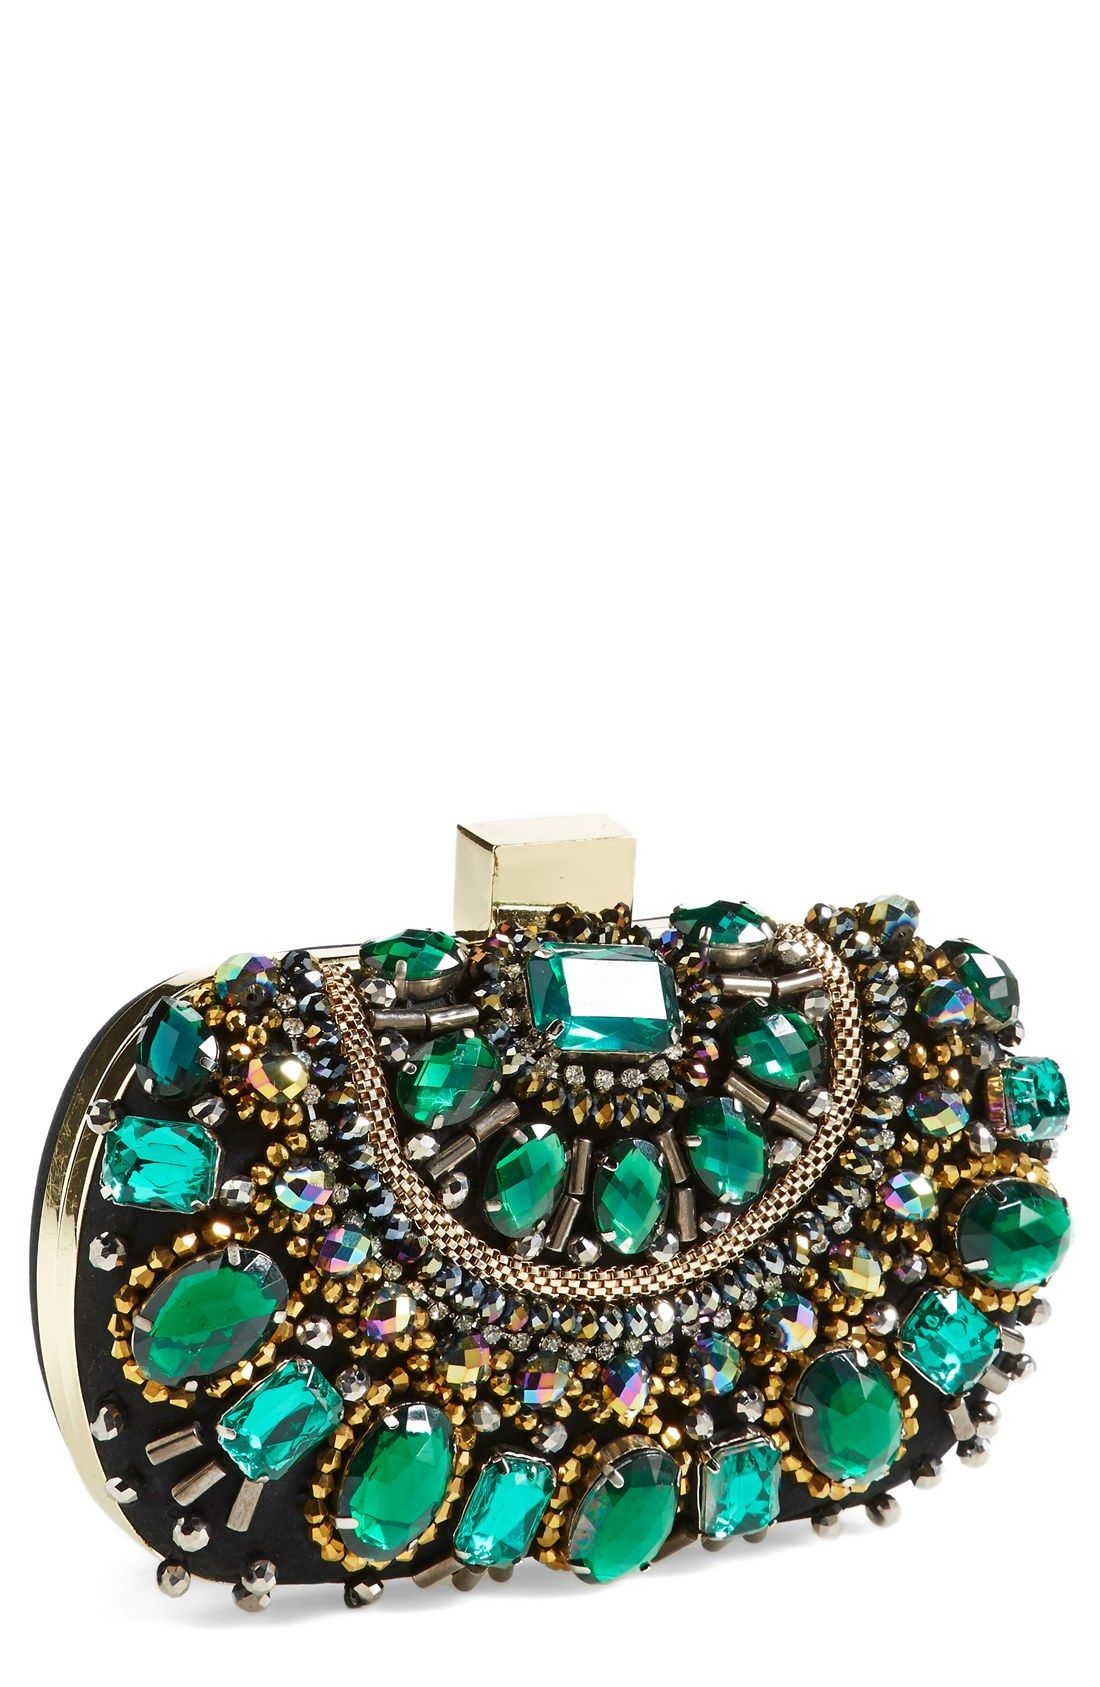 aa81e663fed9 Speechless over this emerald clutch.